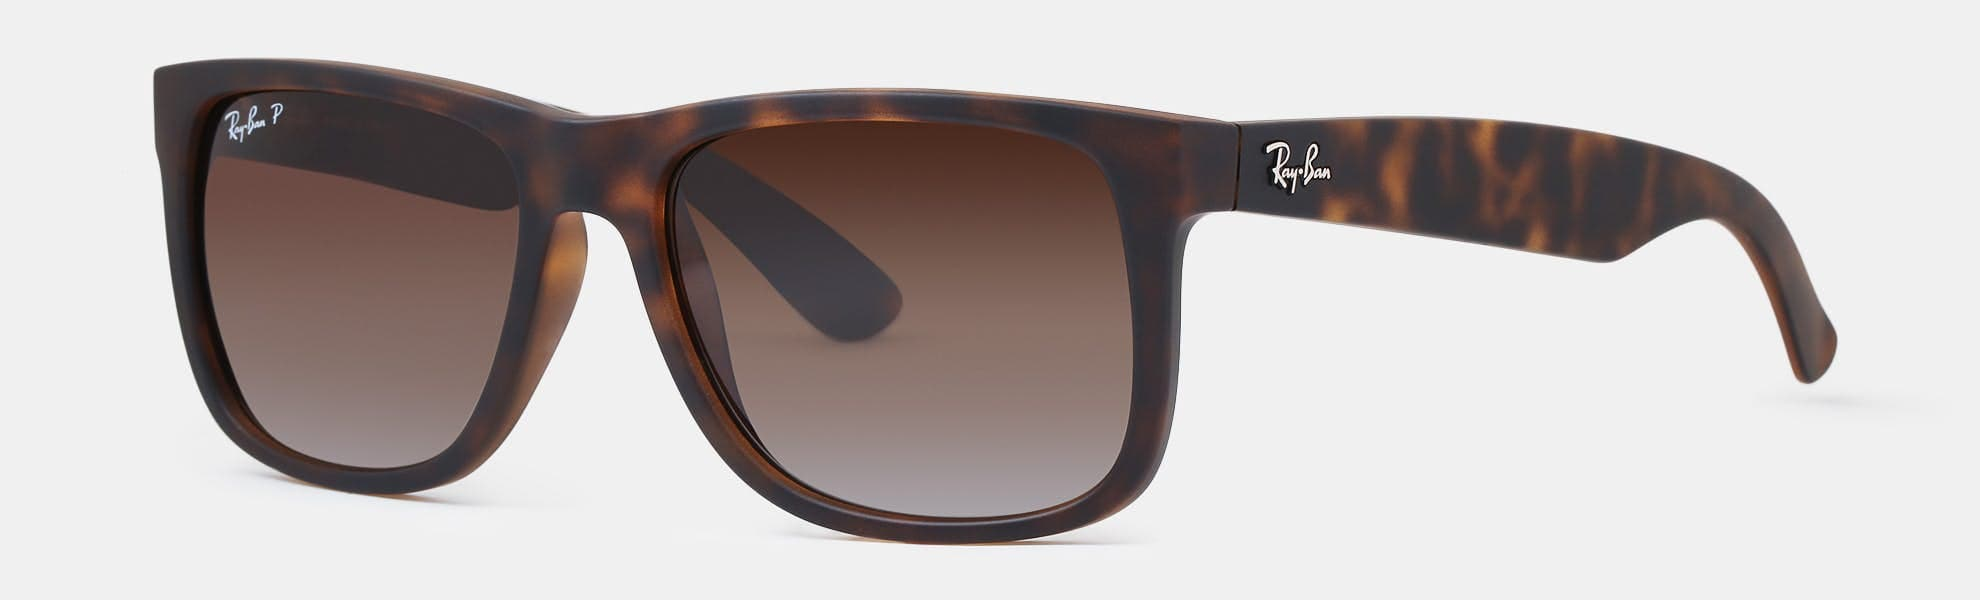 3ada3a1ce ... sale ray ban justin polarized rectangular tortoise brown sunglasses  79.99 free shipping massdrop a8bdc 5bda8